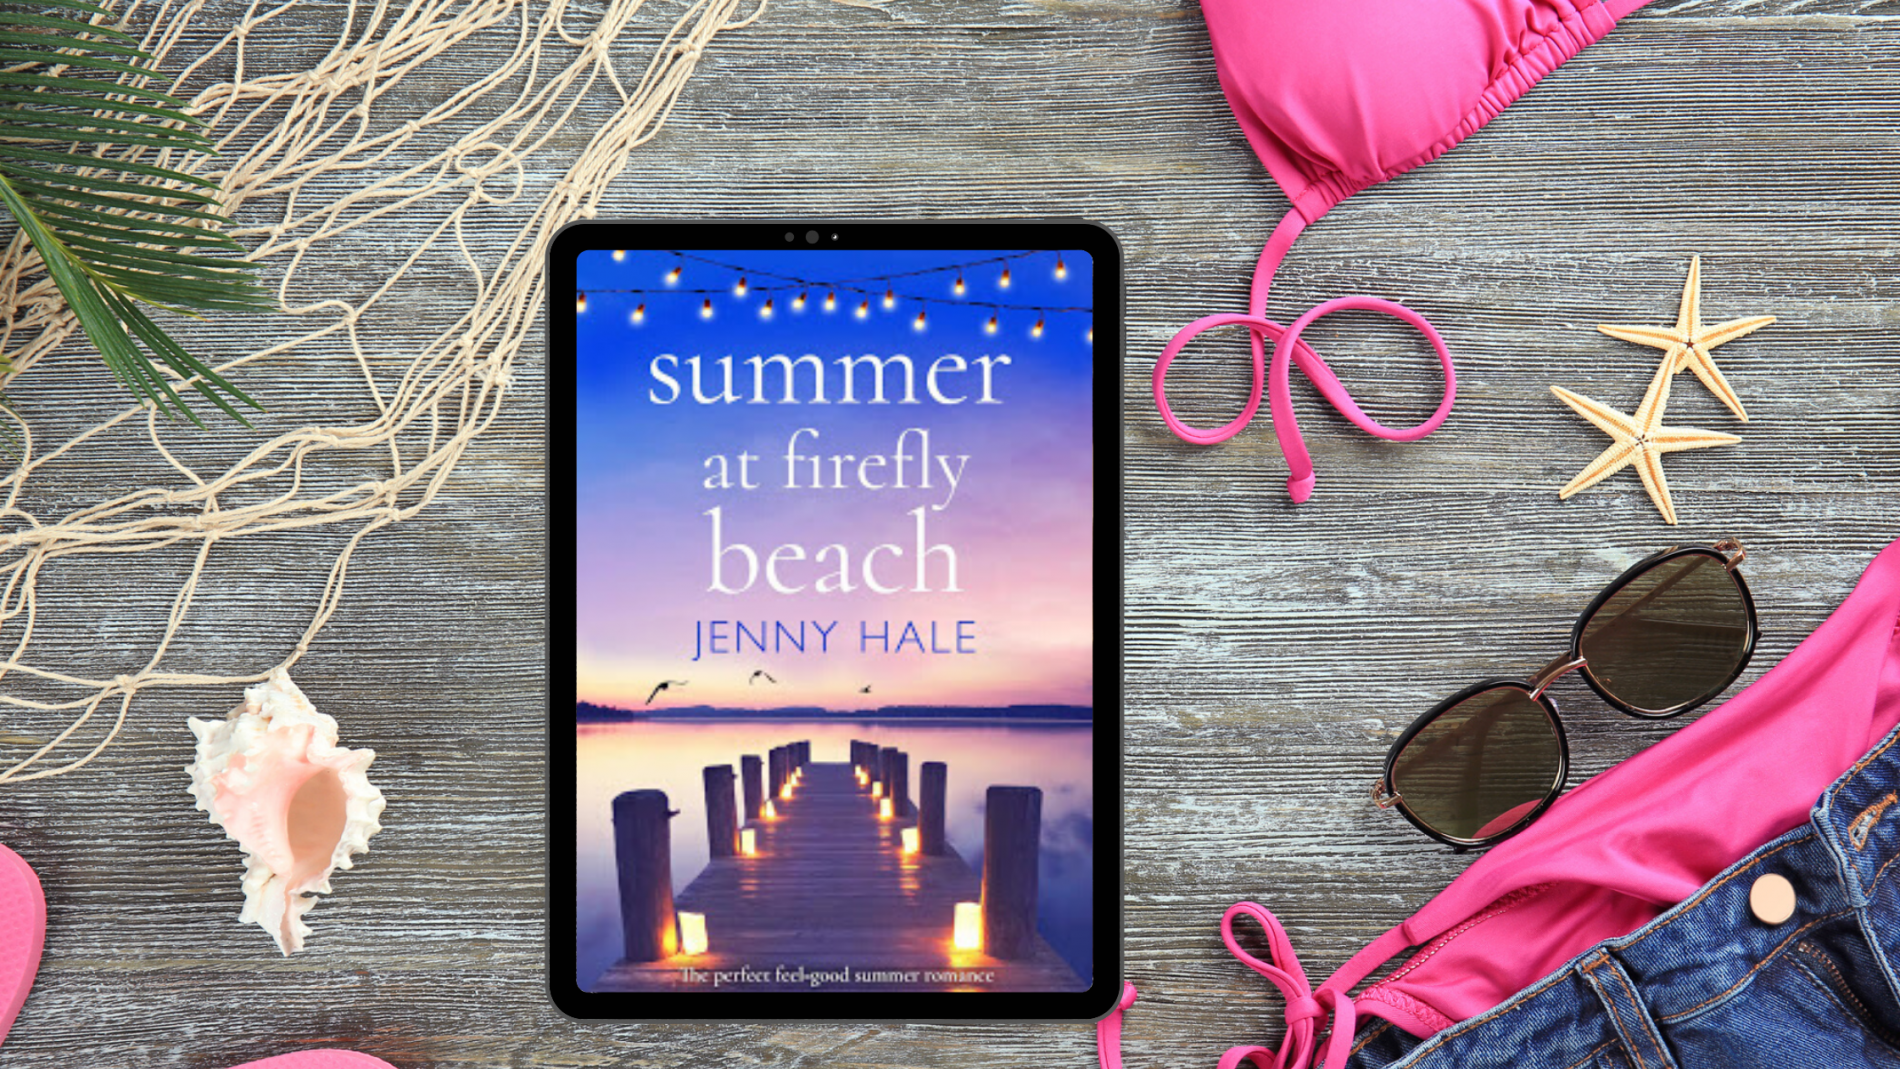 Summer at Firefly Beach by Jenny Hale